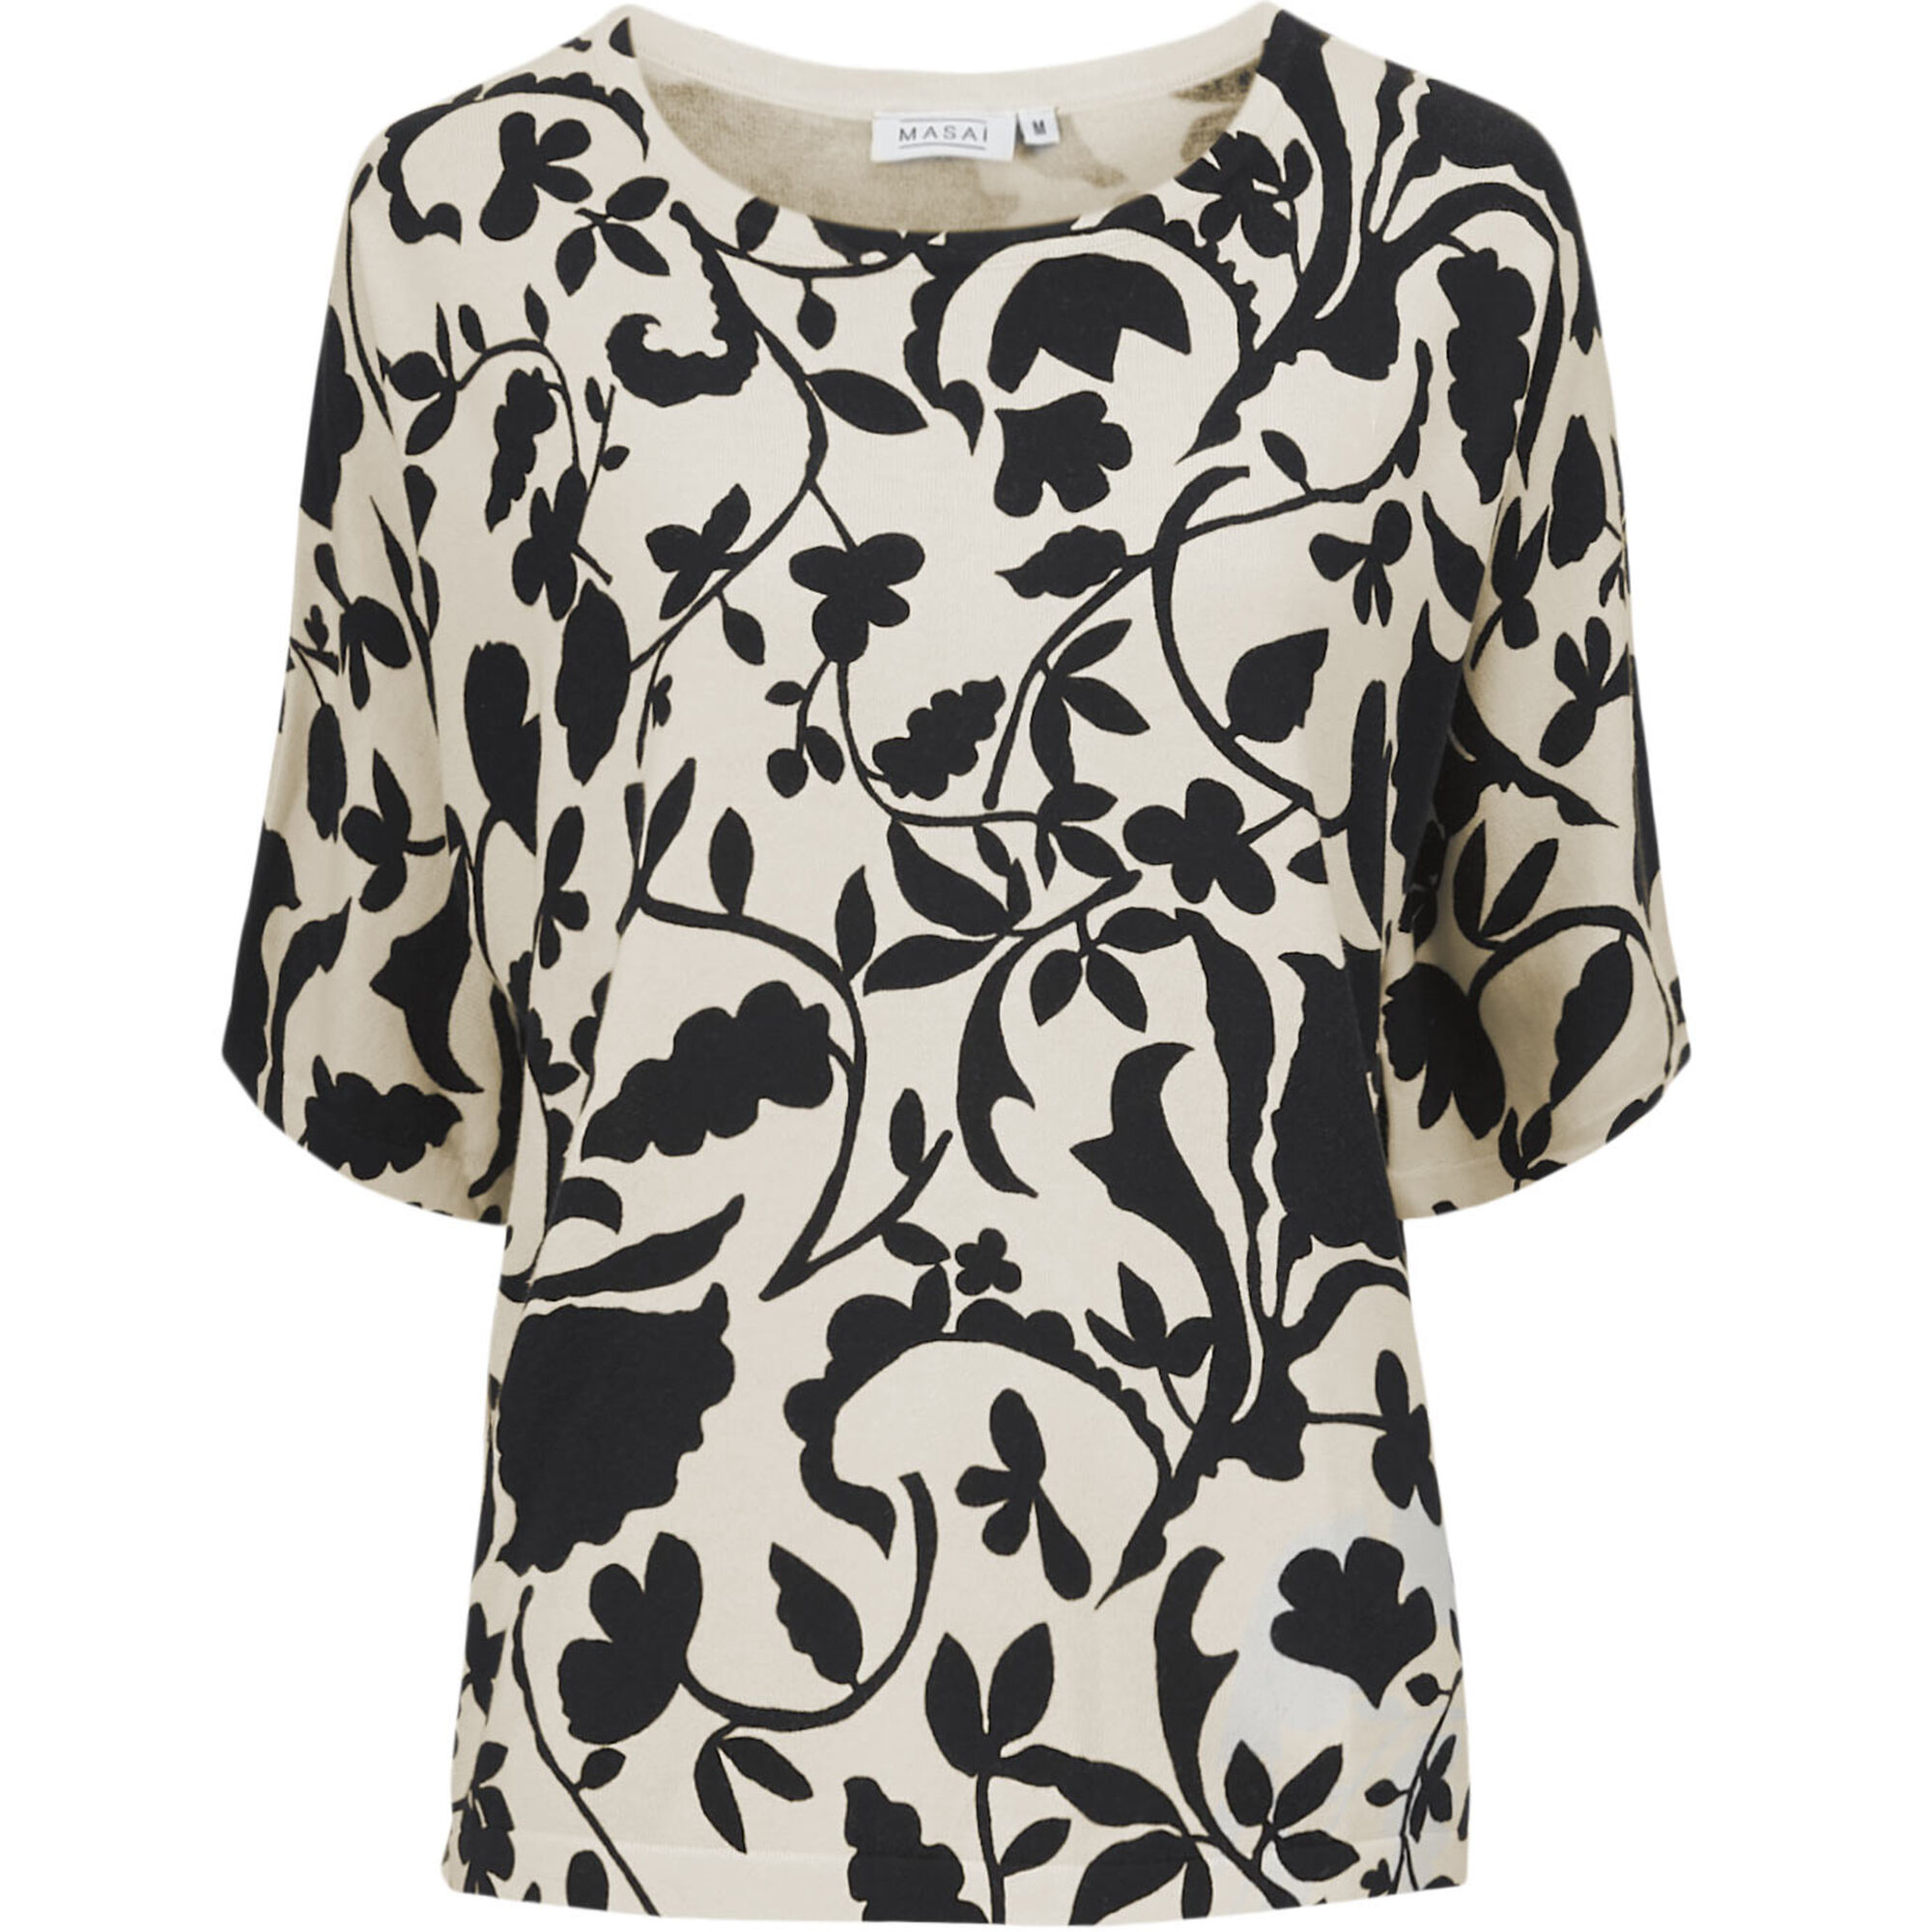 FENELLA TOP, Black, hi-res